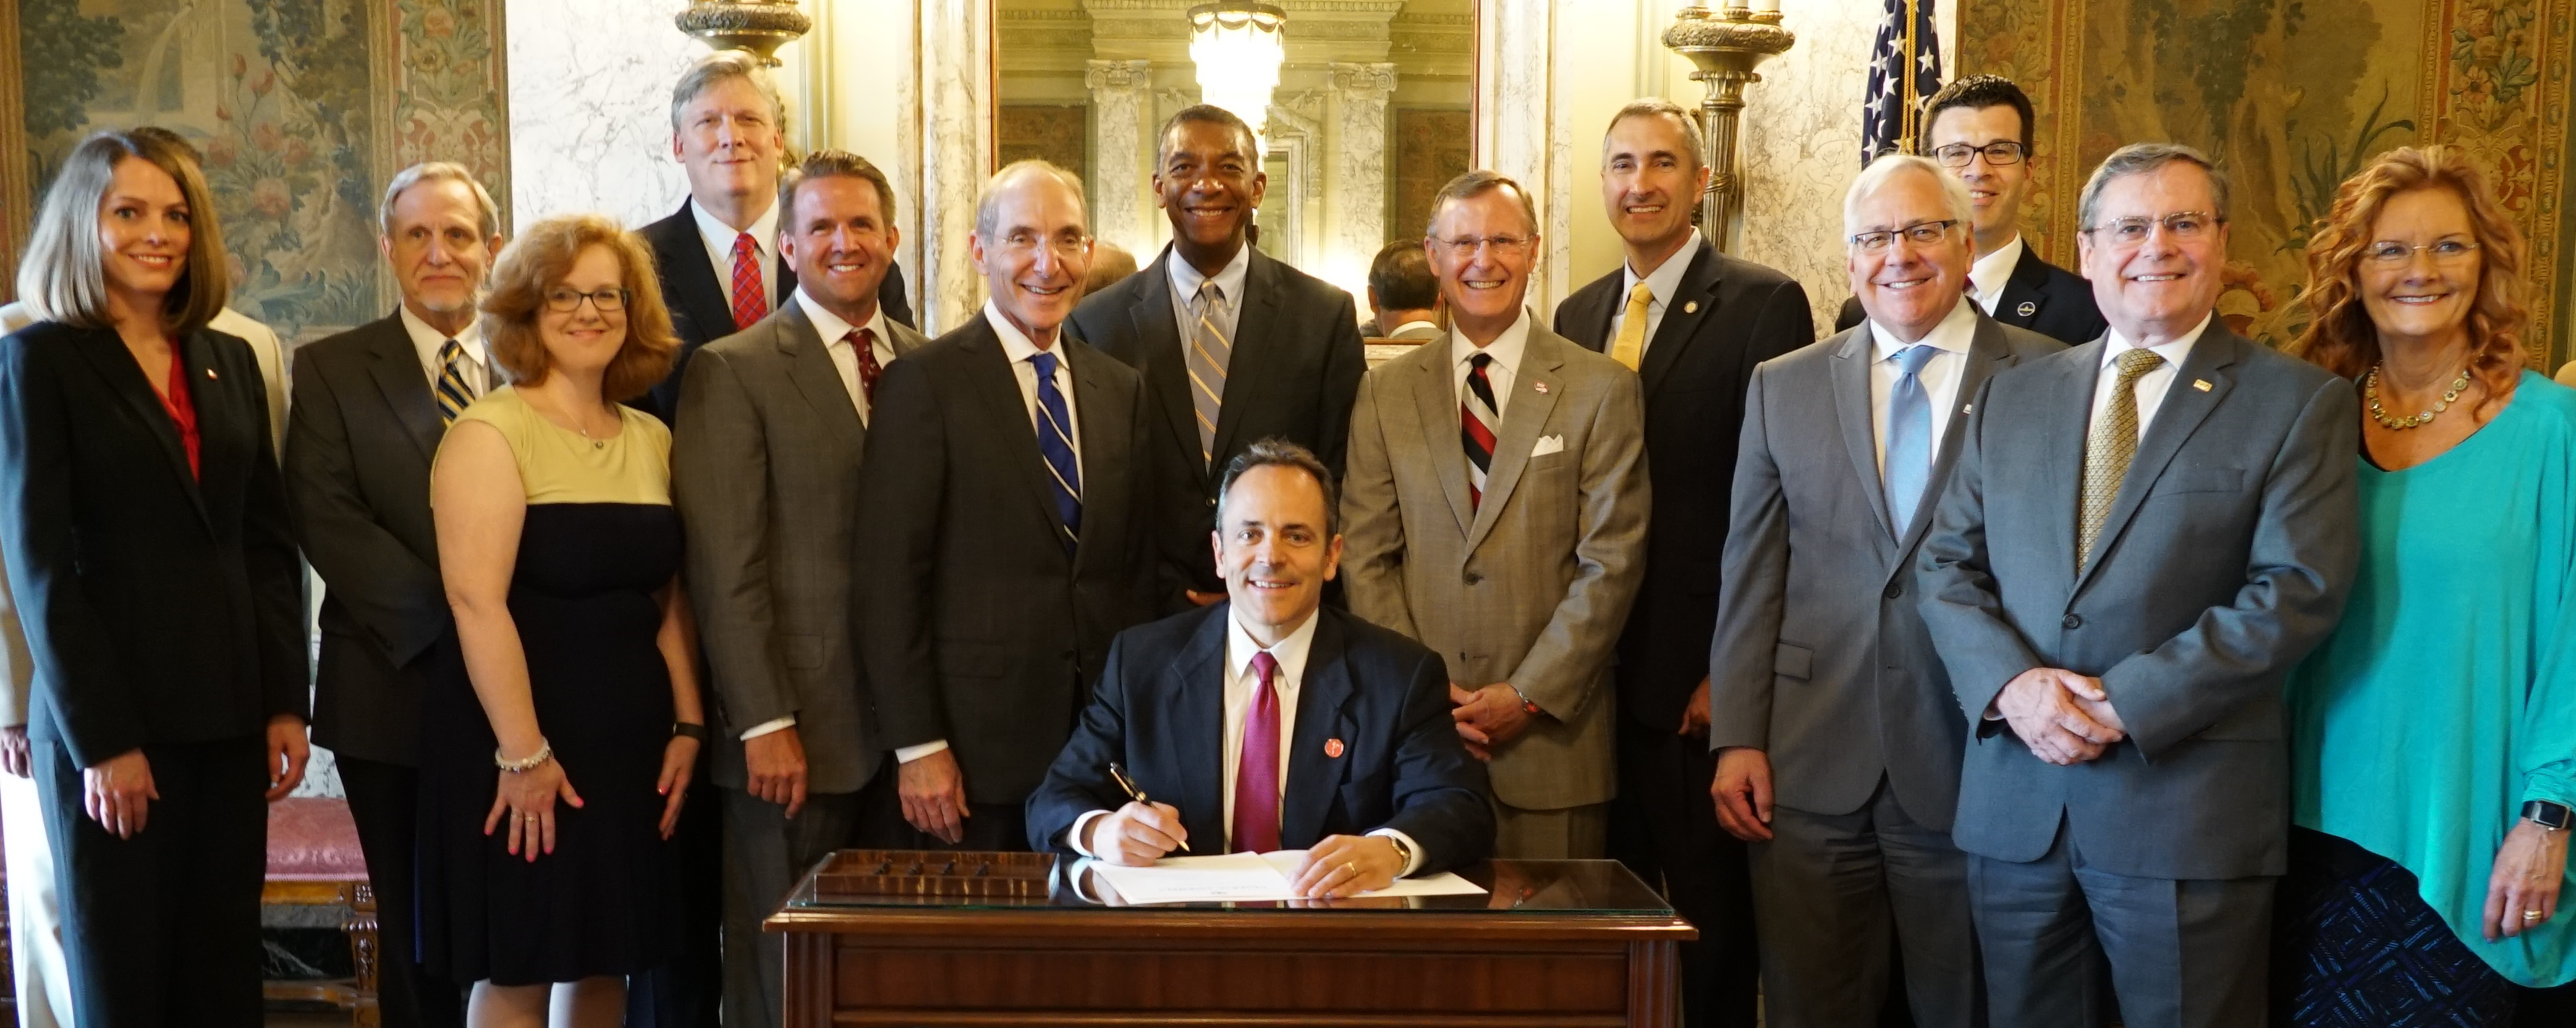 Gov. Matt Bevin ceremonially signs SB 153, the new performance funding bill while campus presidents and representatives look on.